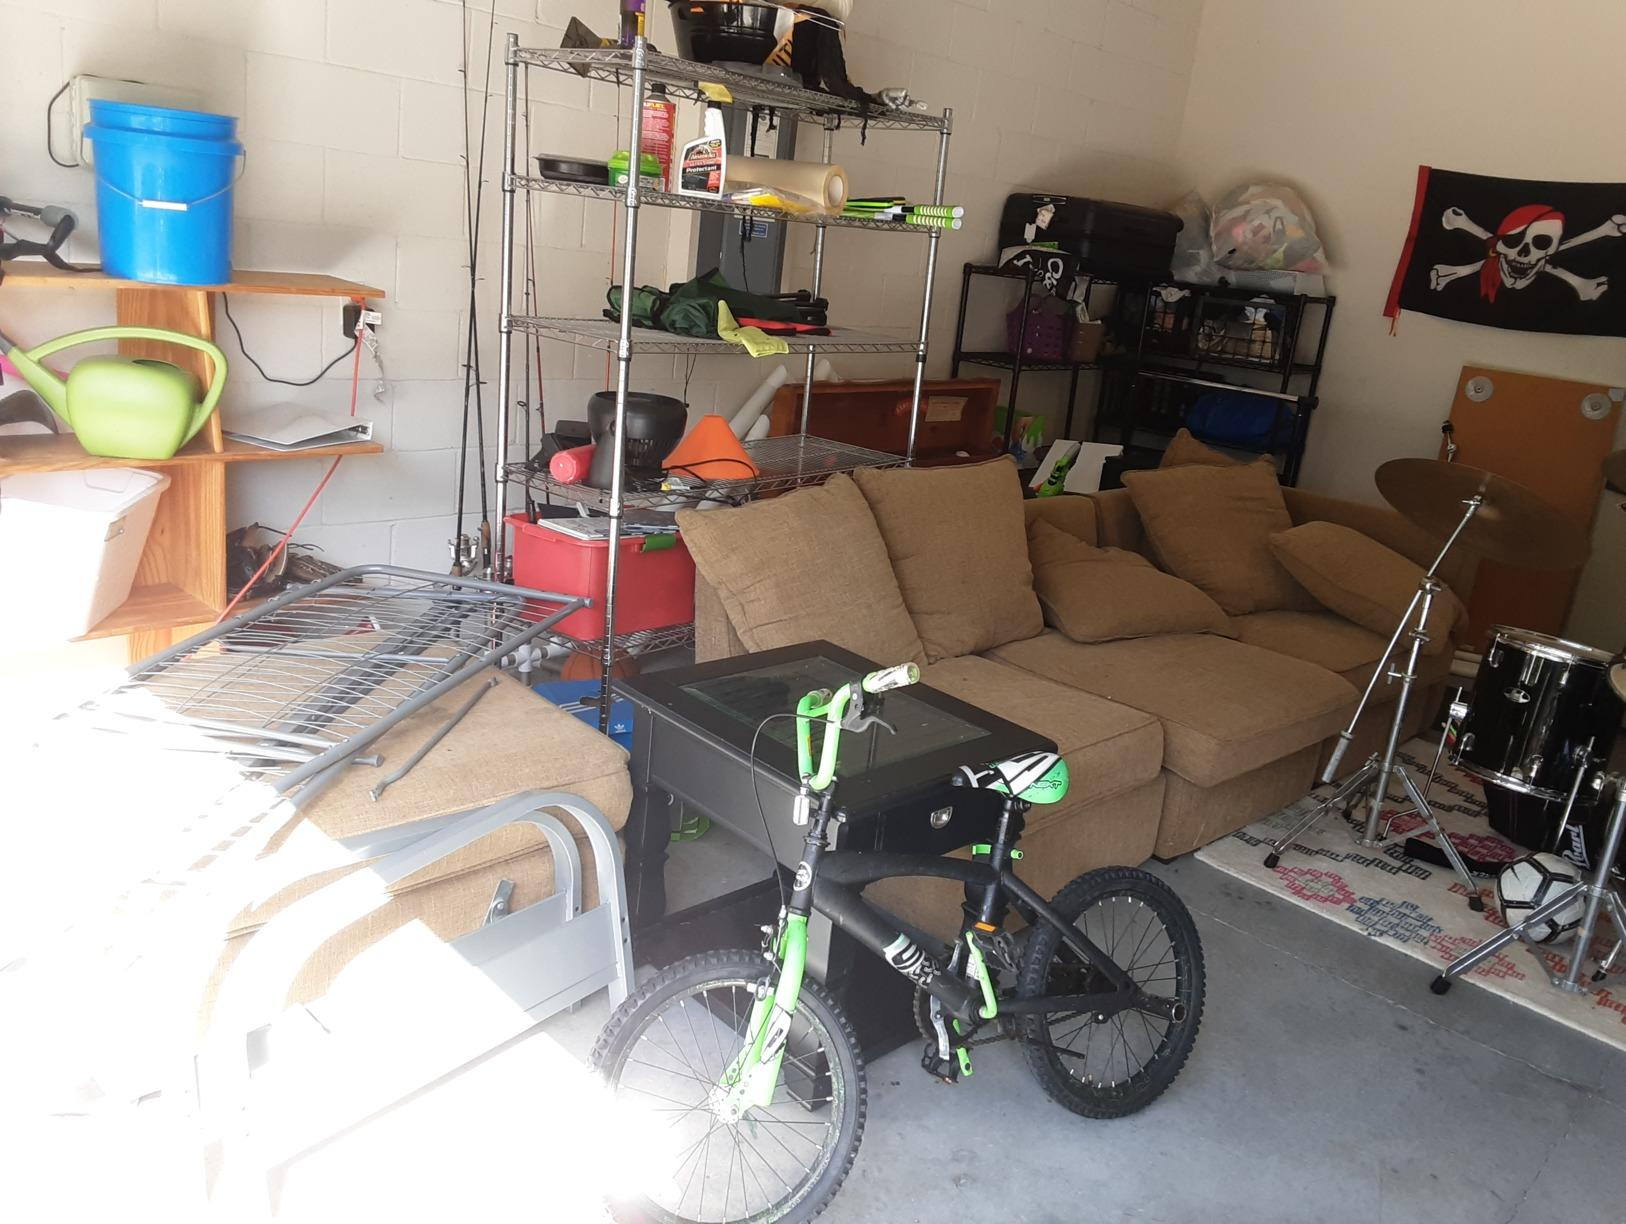 Garage Cleanout in Land O Lakes, FL! - Before Photo